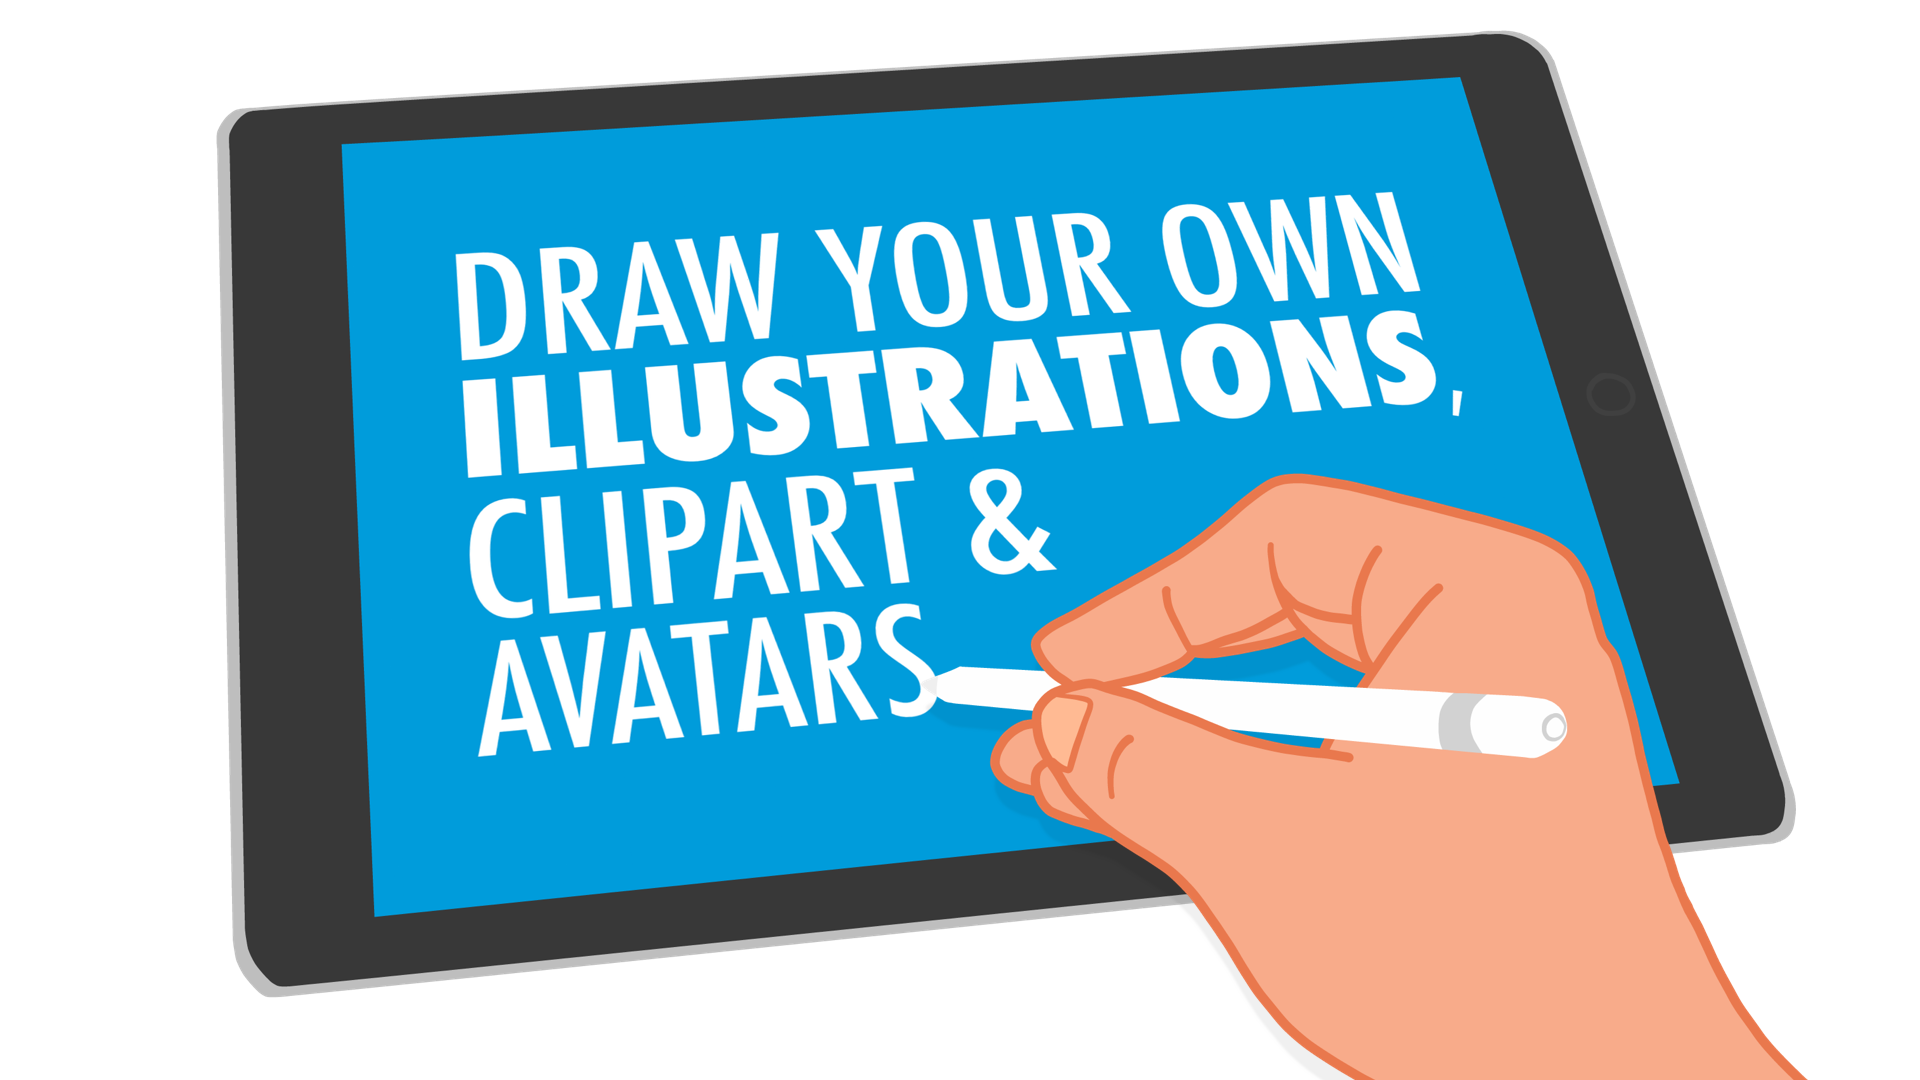 Draw Your Own Illustrations, Clipart & Avatars.